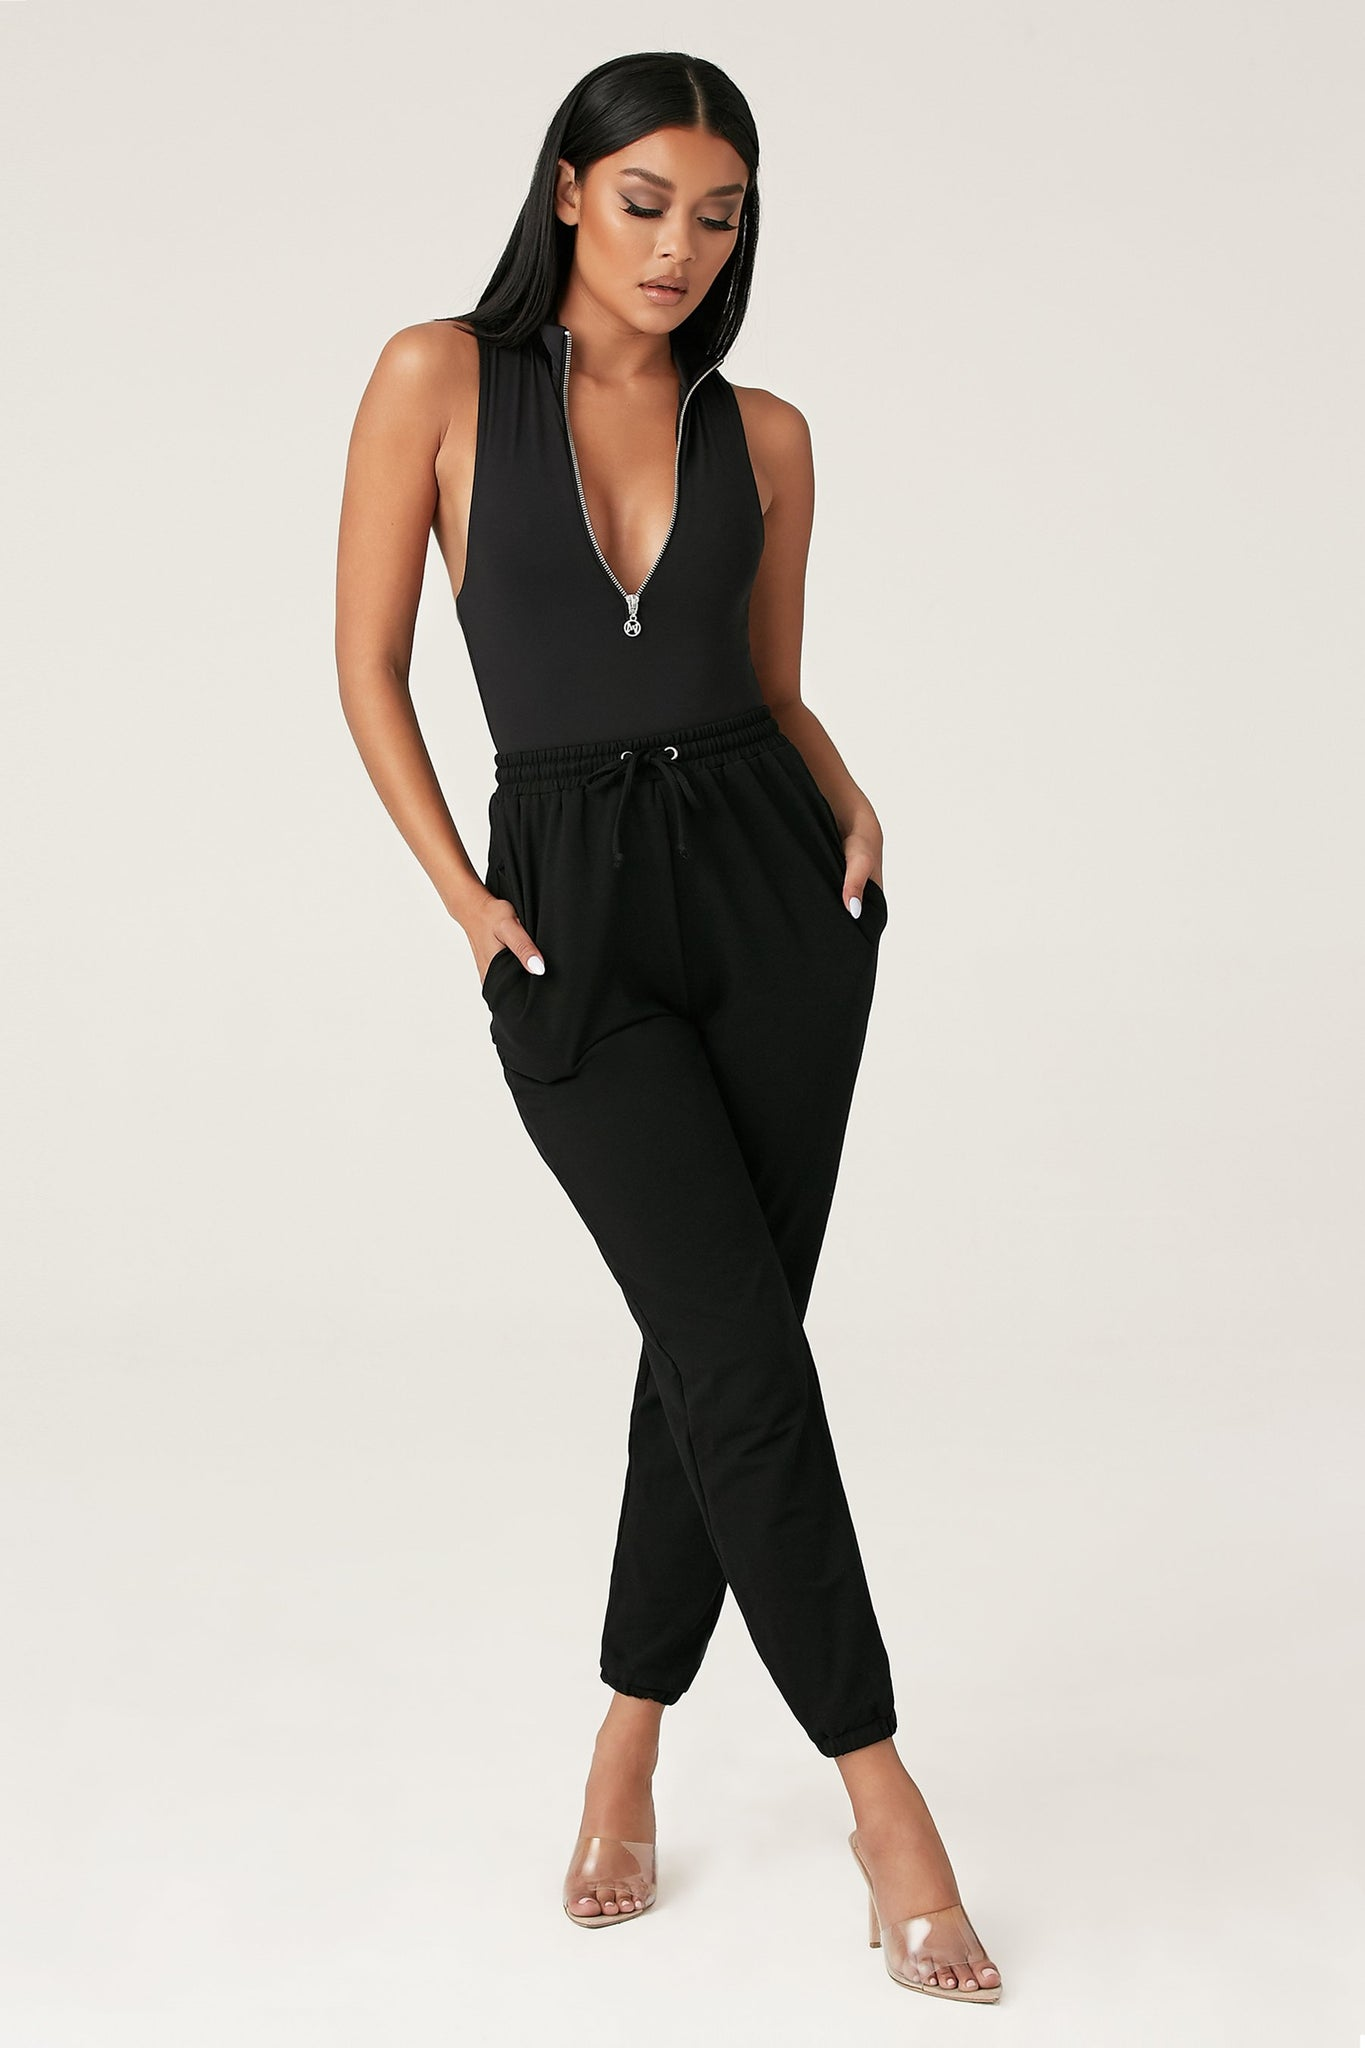 Paulina Sleeveless High Neck Zip Bodysuit - Black - MESHKI